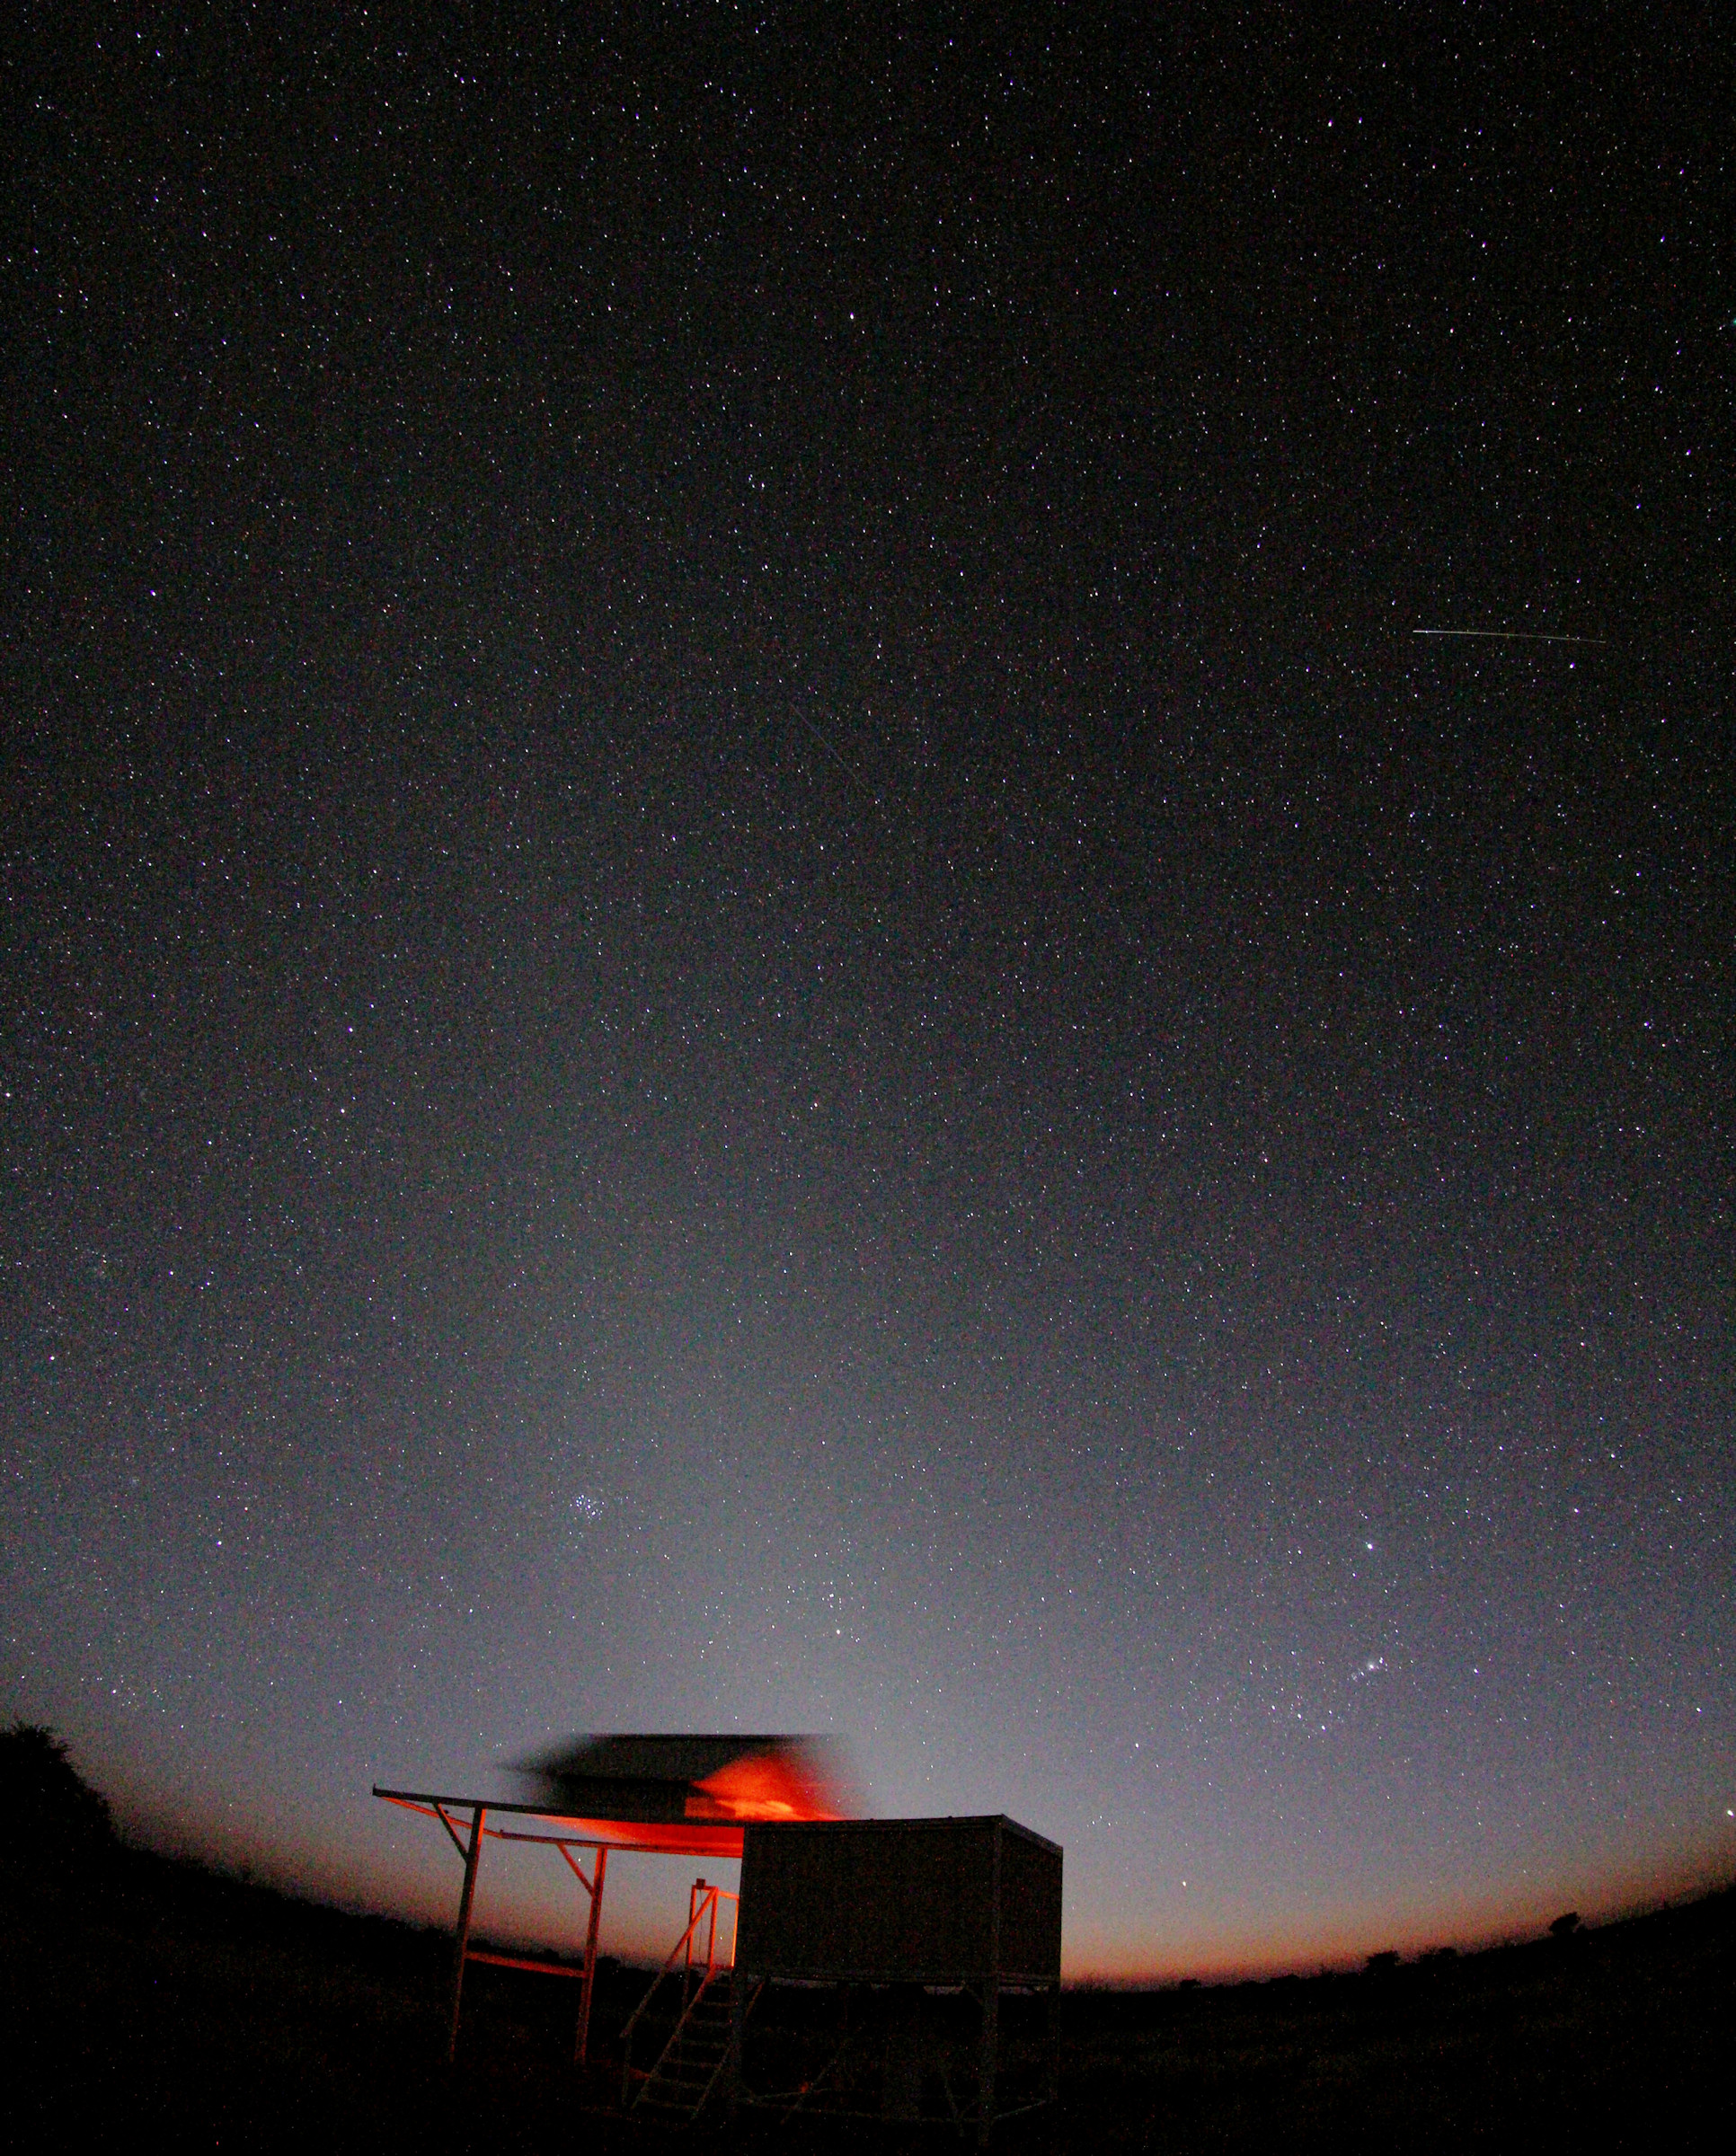 20130707, dawn over Fornax observatory.